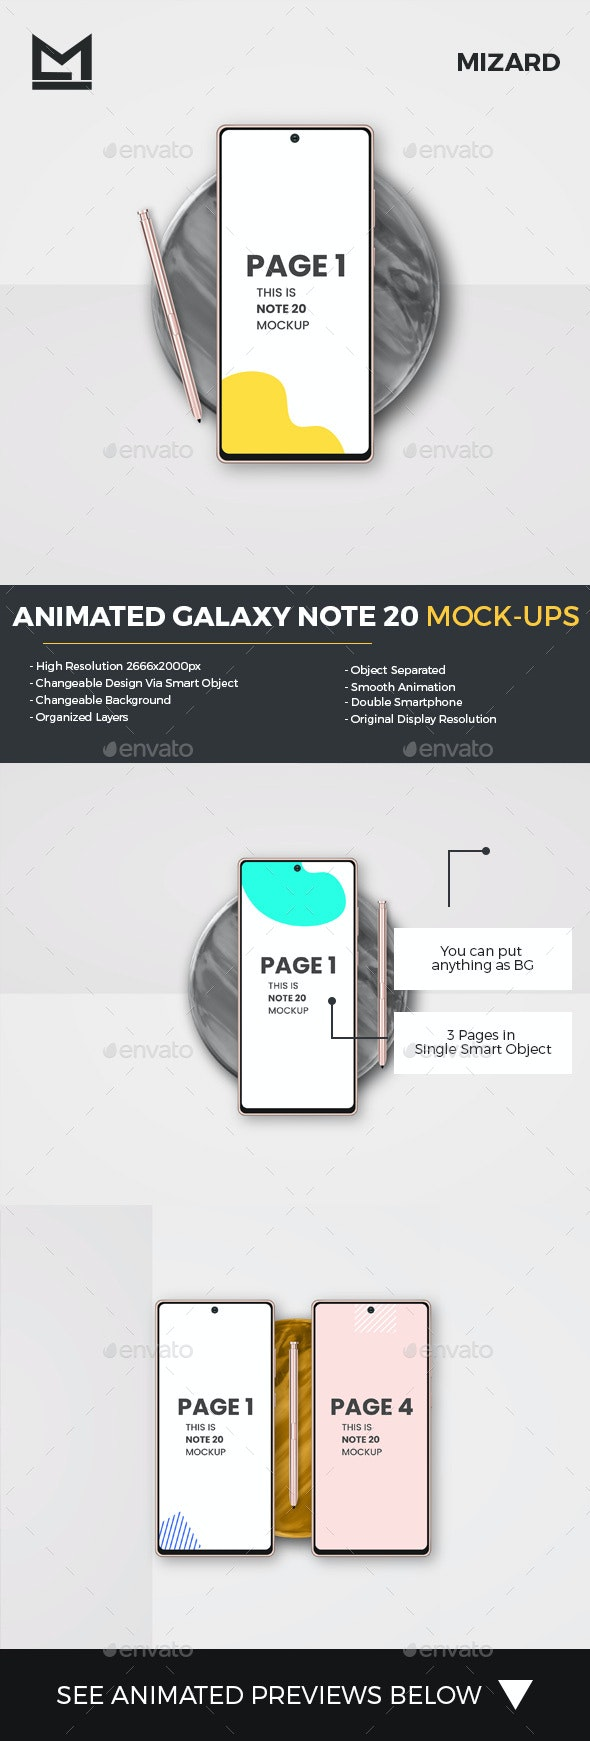 Animated Galaxy Note 20 Mockup - Mobile Displays